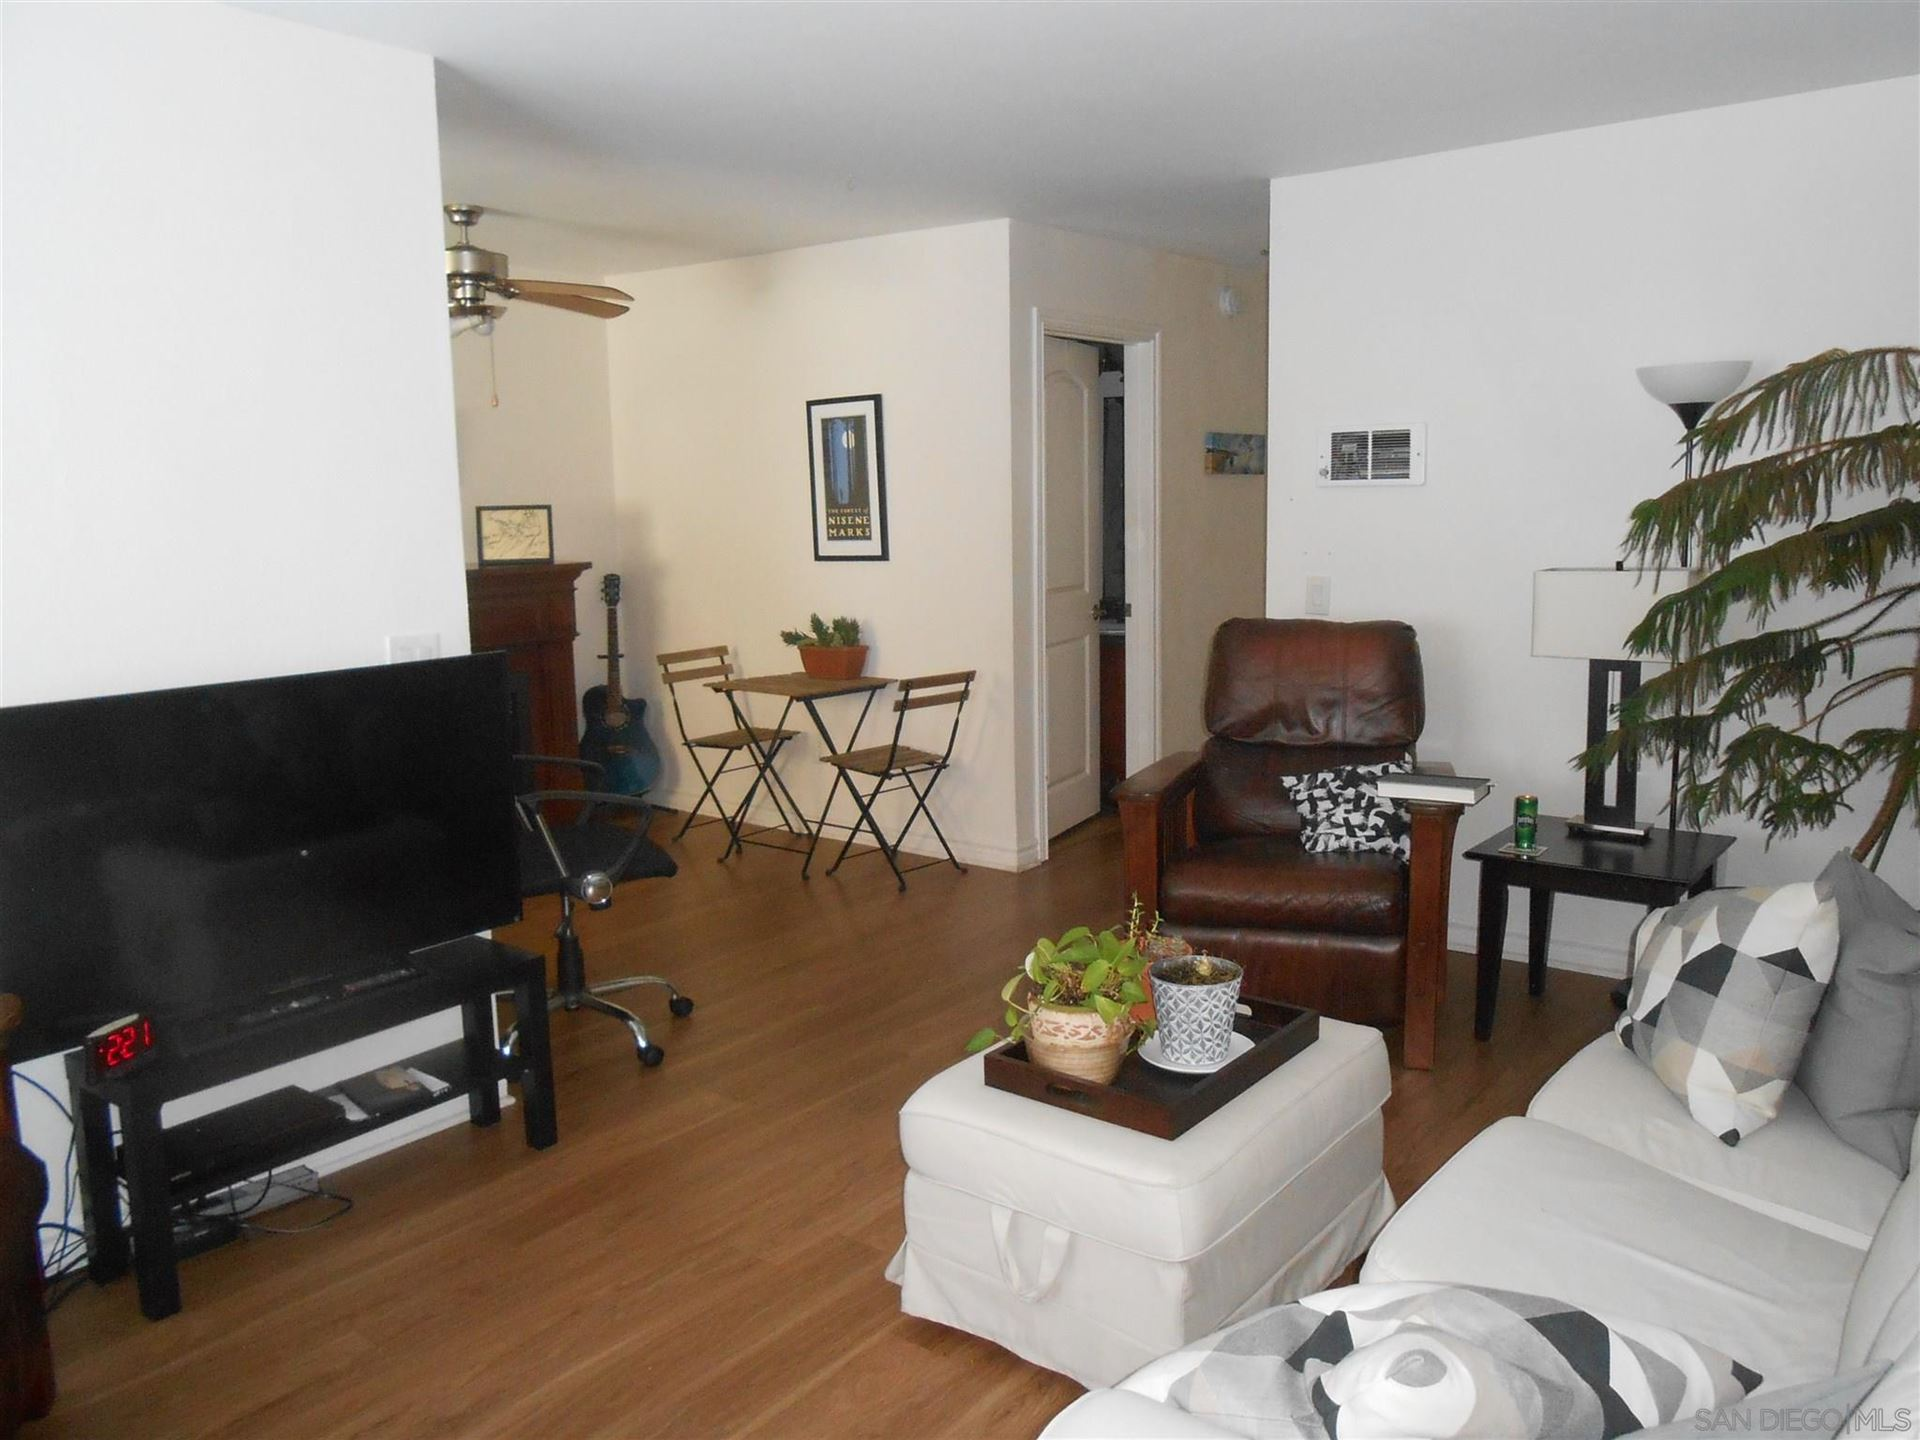 Photo of 1340 Holly #8, Imperial Beach, CA 91932 (MLS # 210006627)